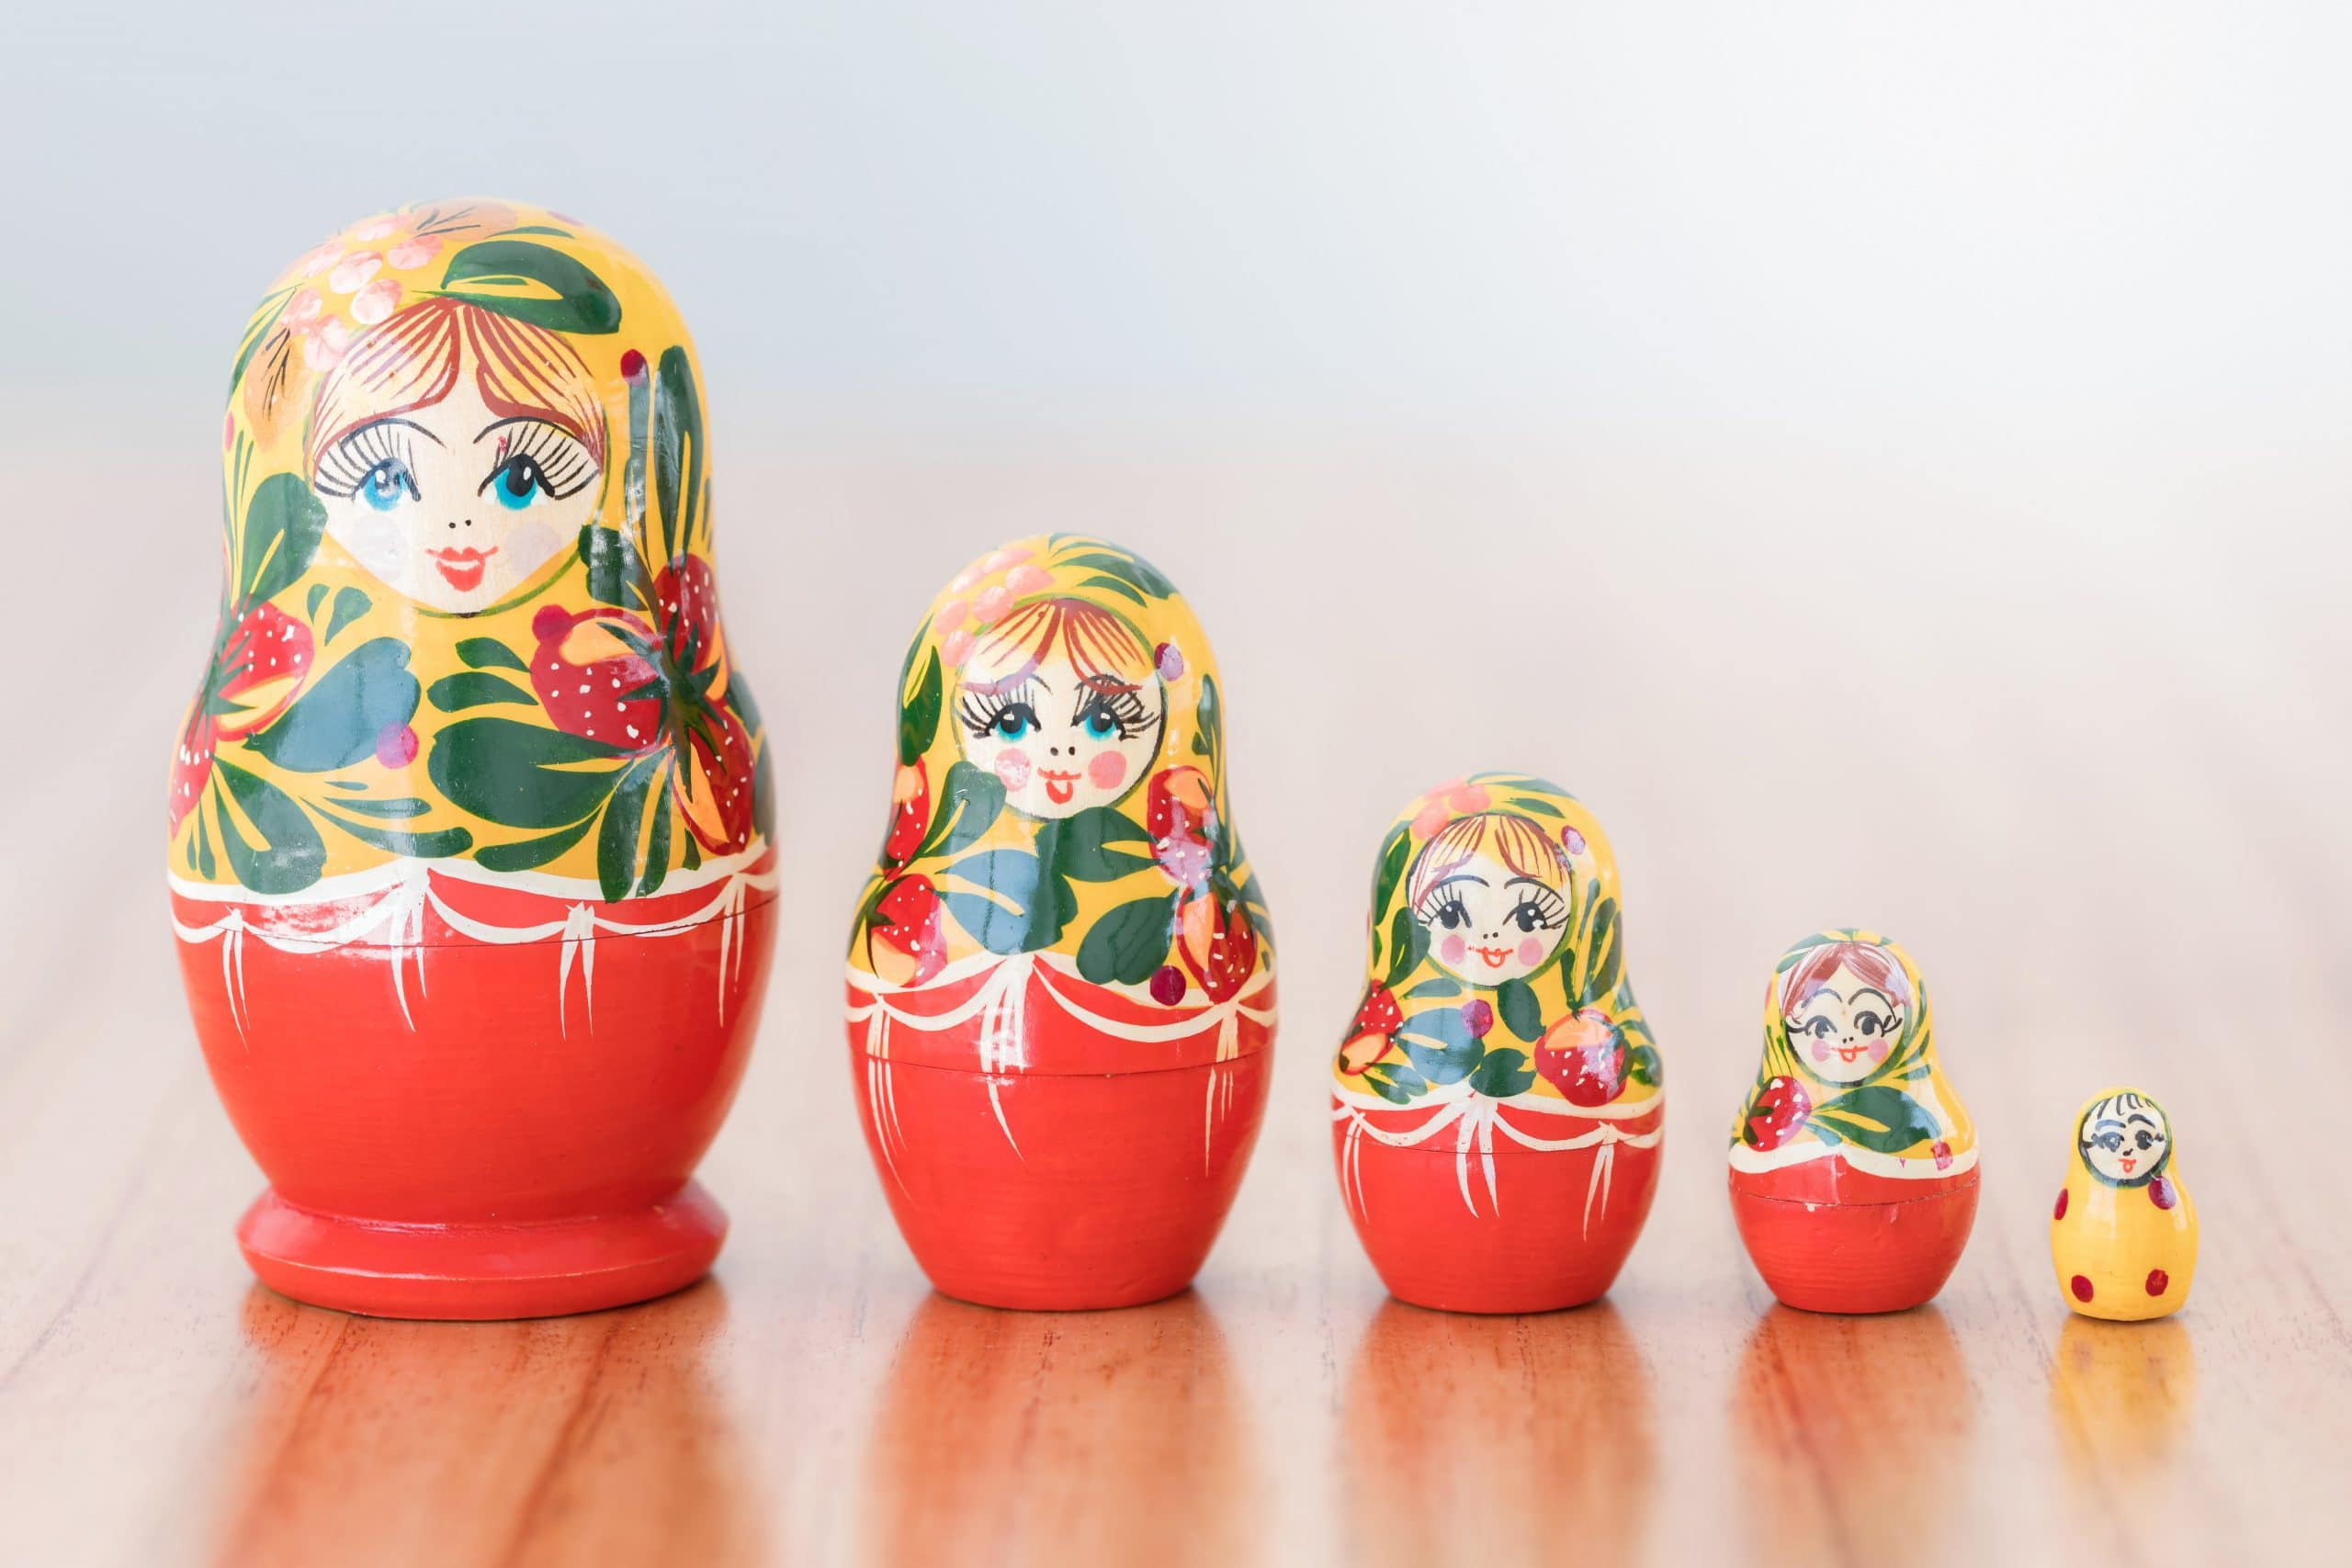 Russian nesting dolls standing in a line